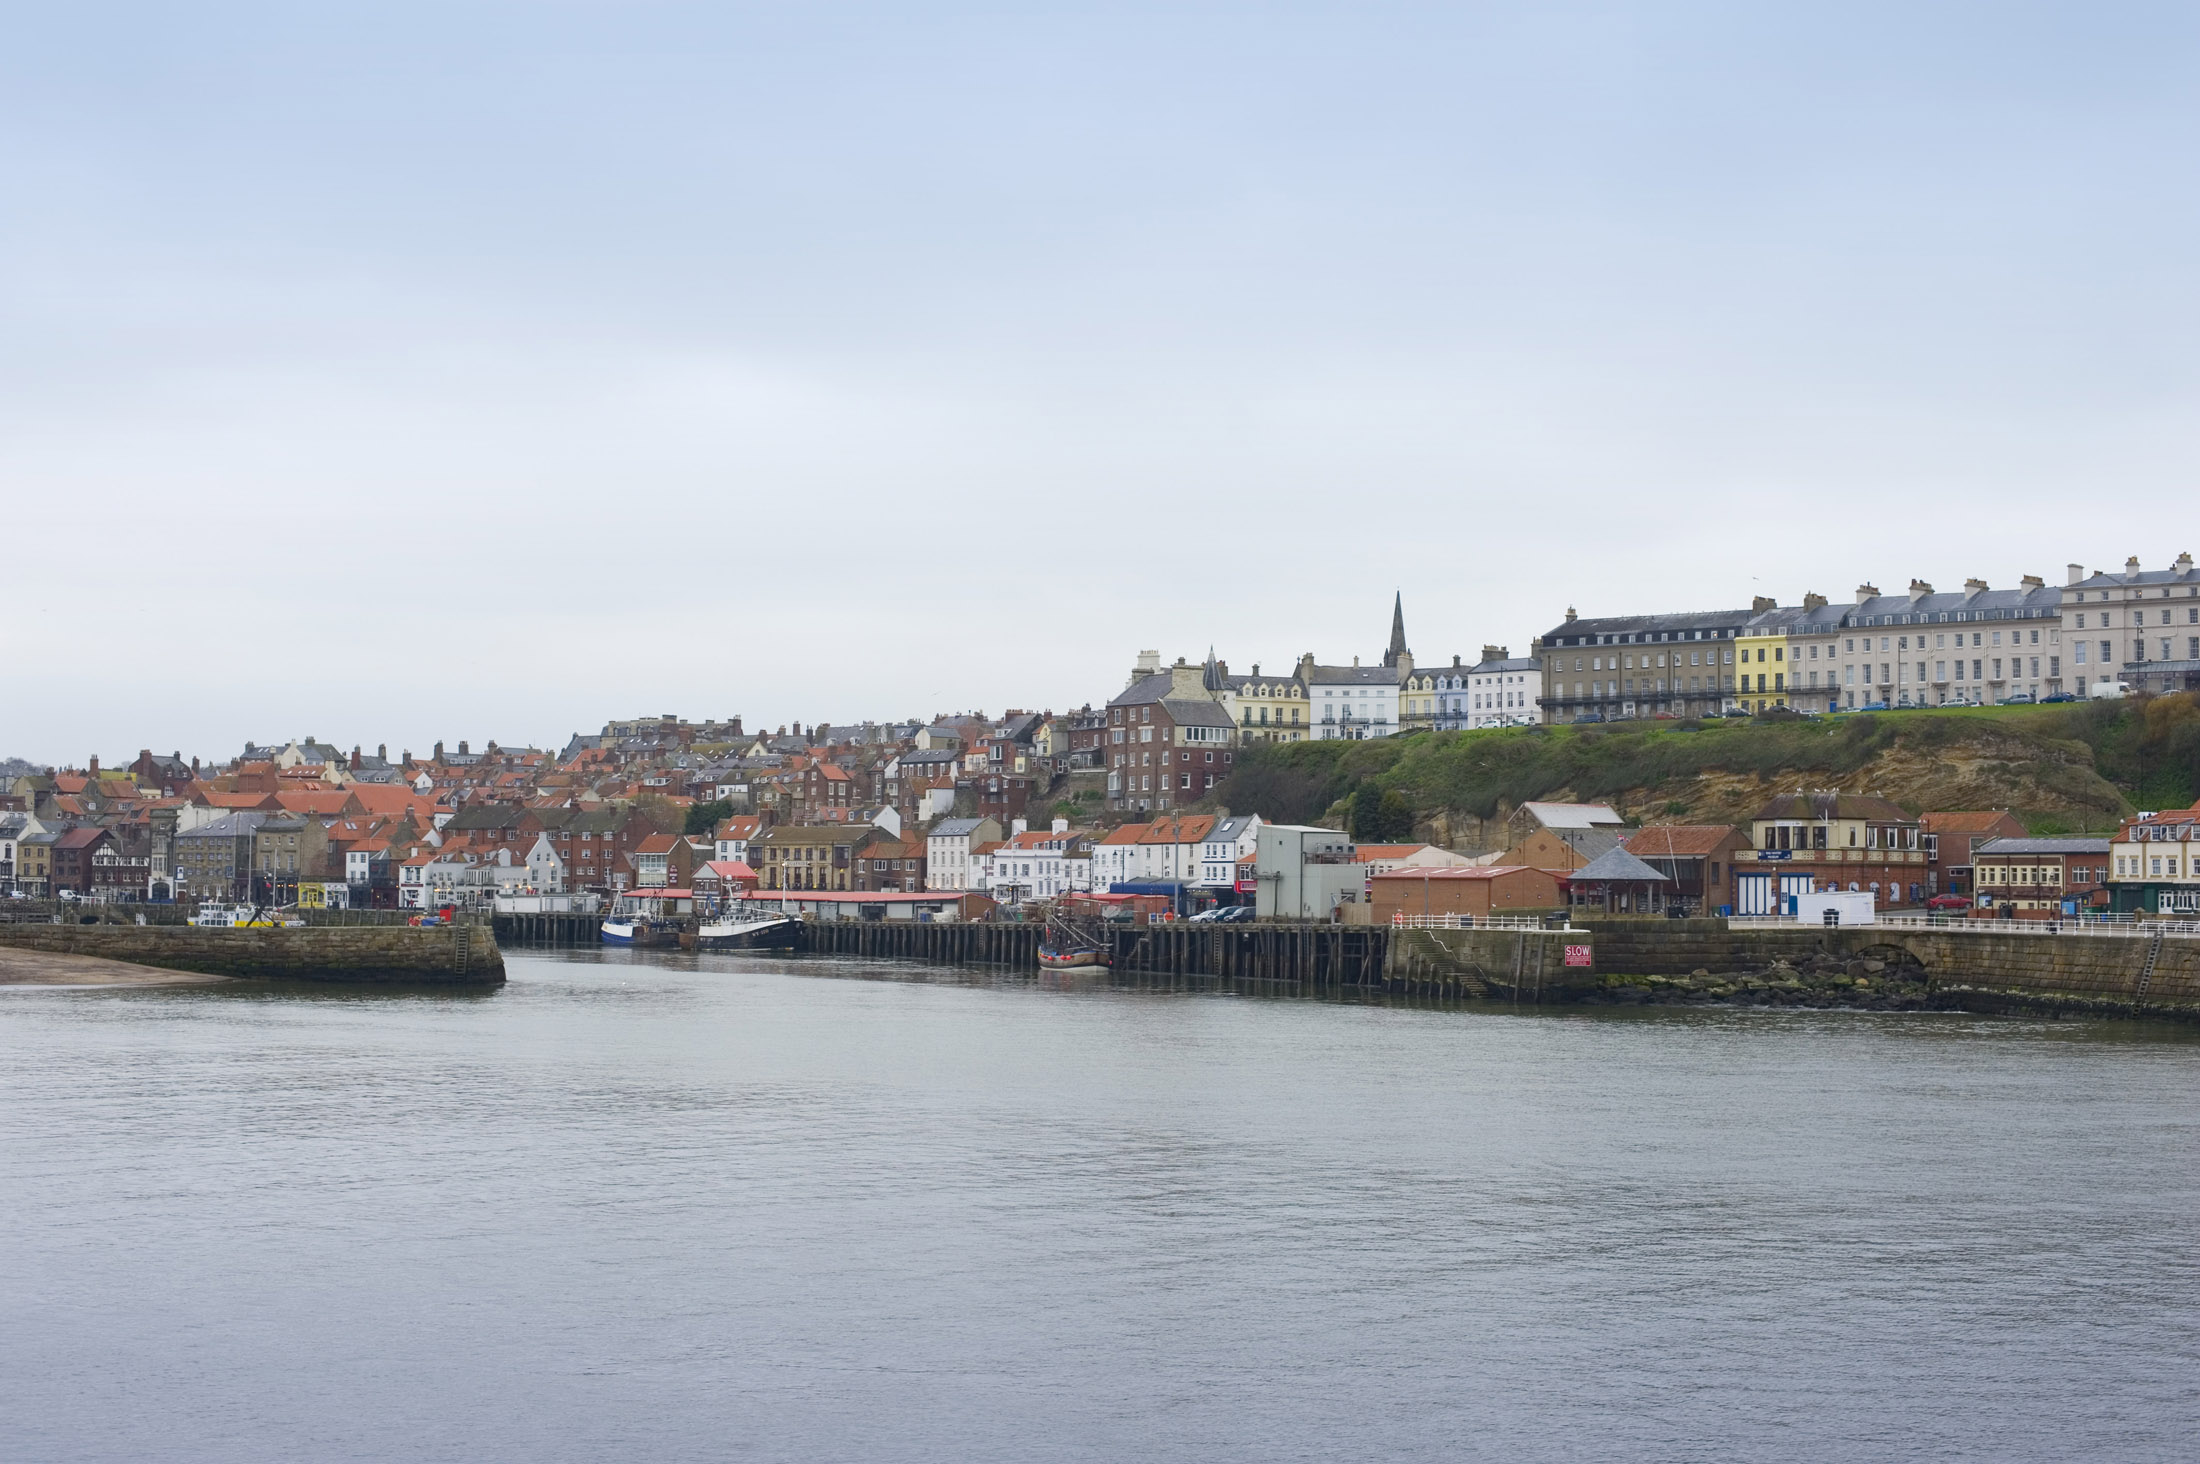 looking towards the western quayside and the fish markets from the east stone pier